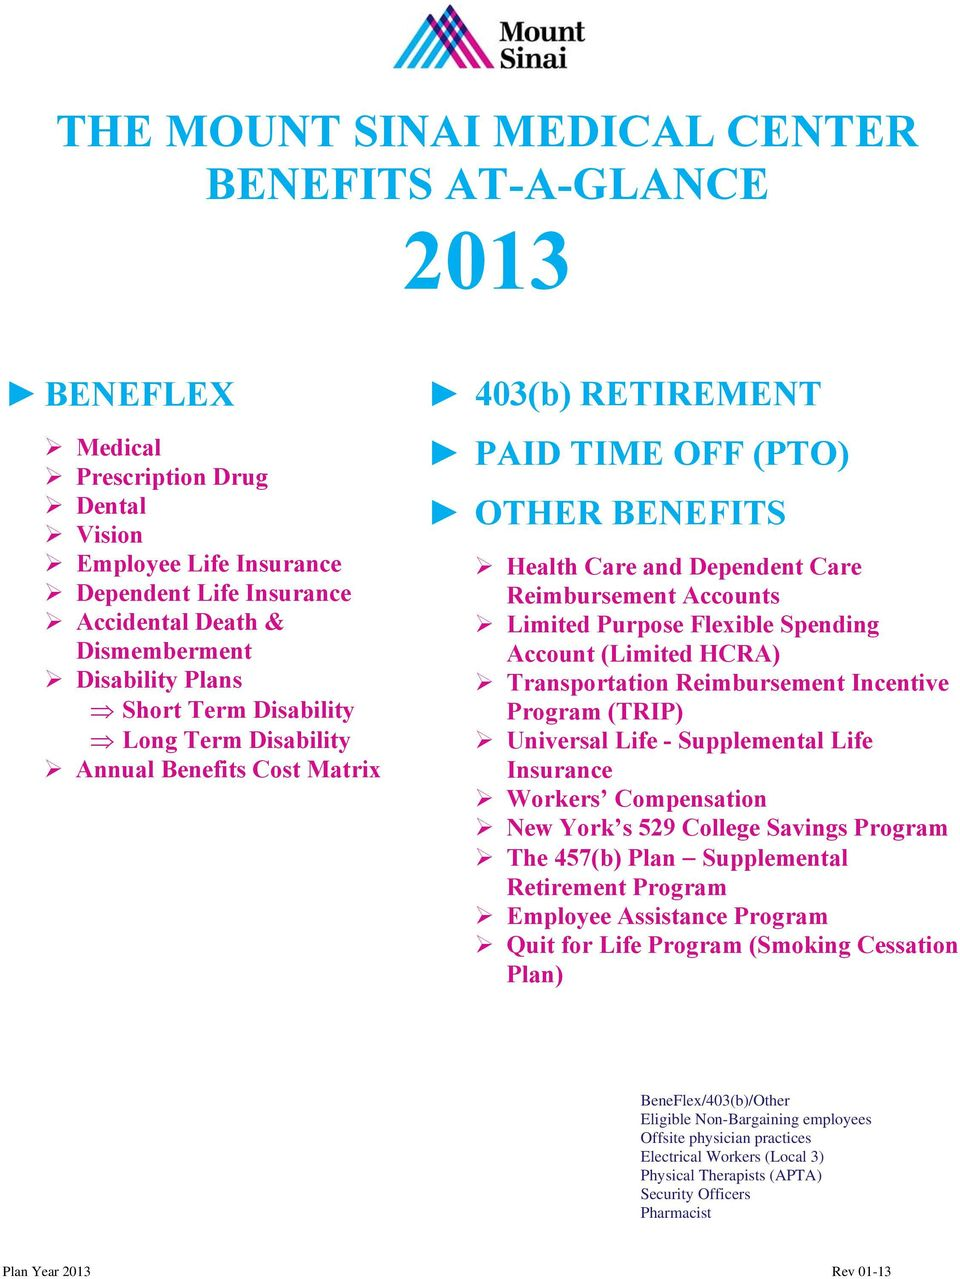 THE MOUNT SINAI MEDICAL CENTER BENEFITS AT-A-GLANCE PDF